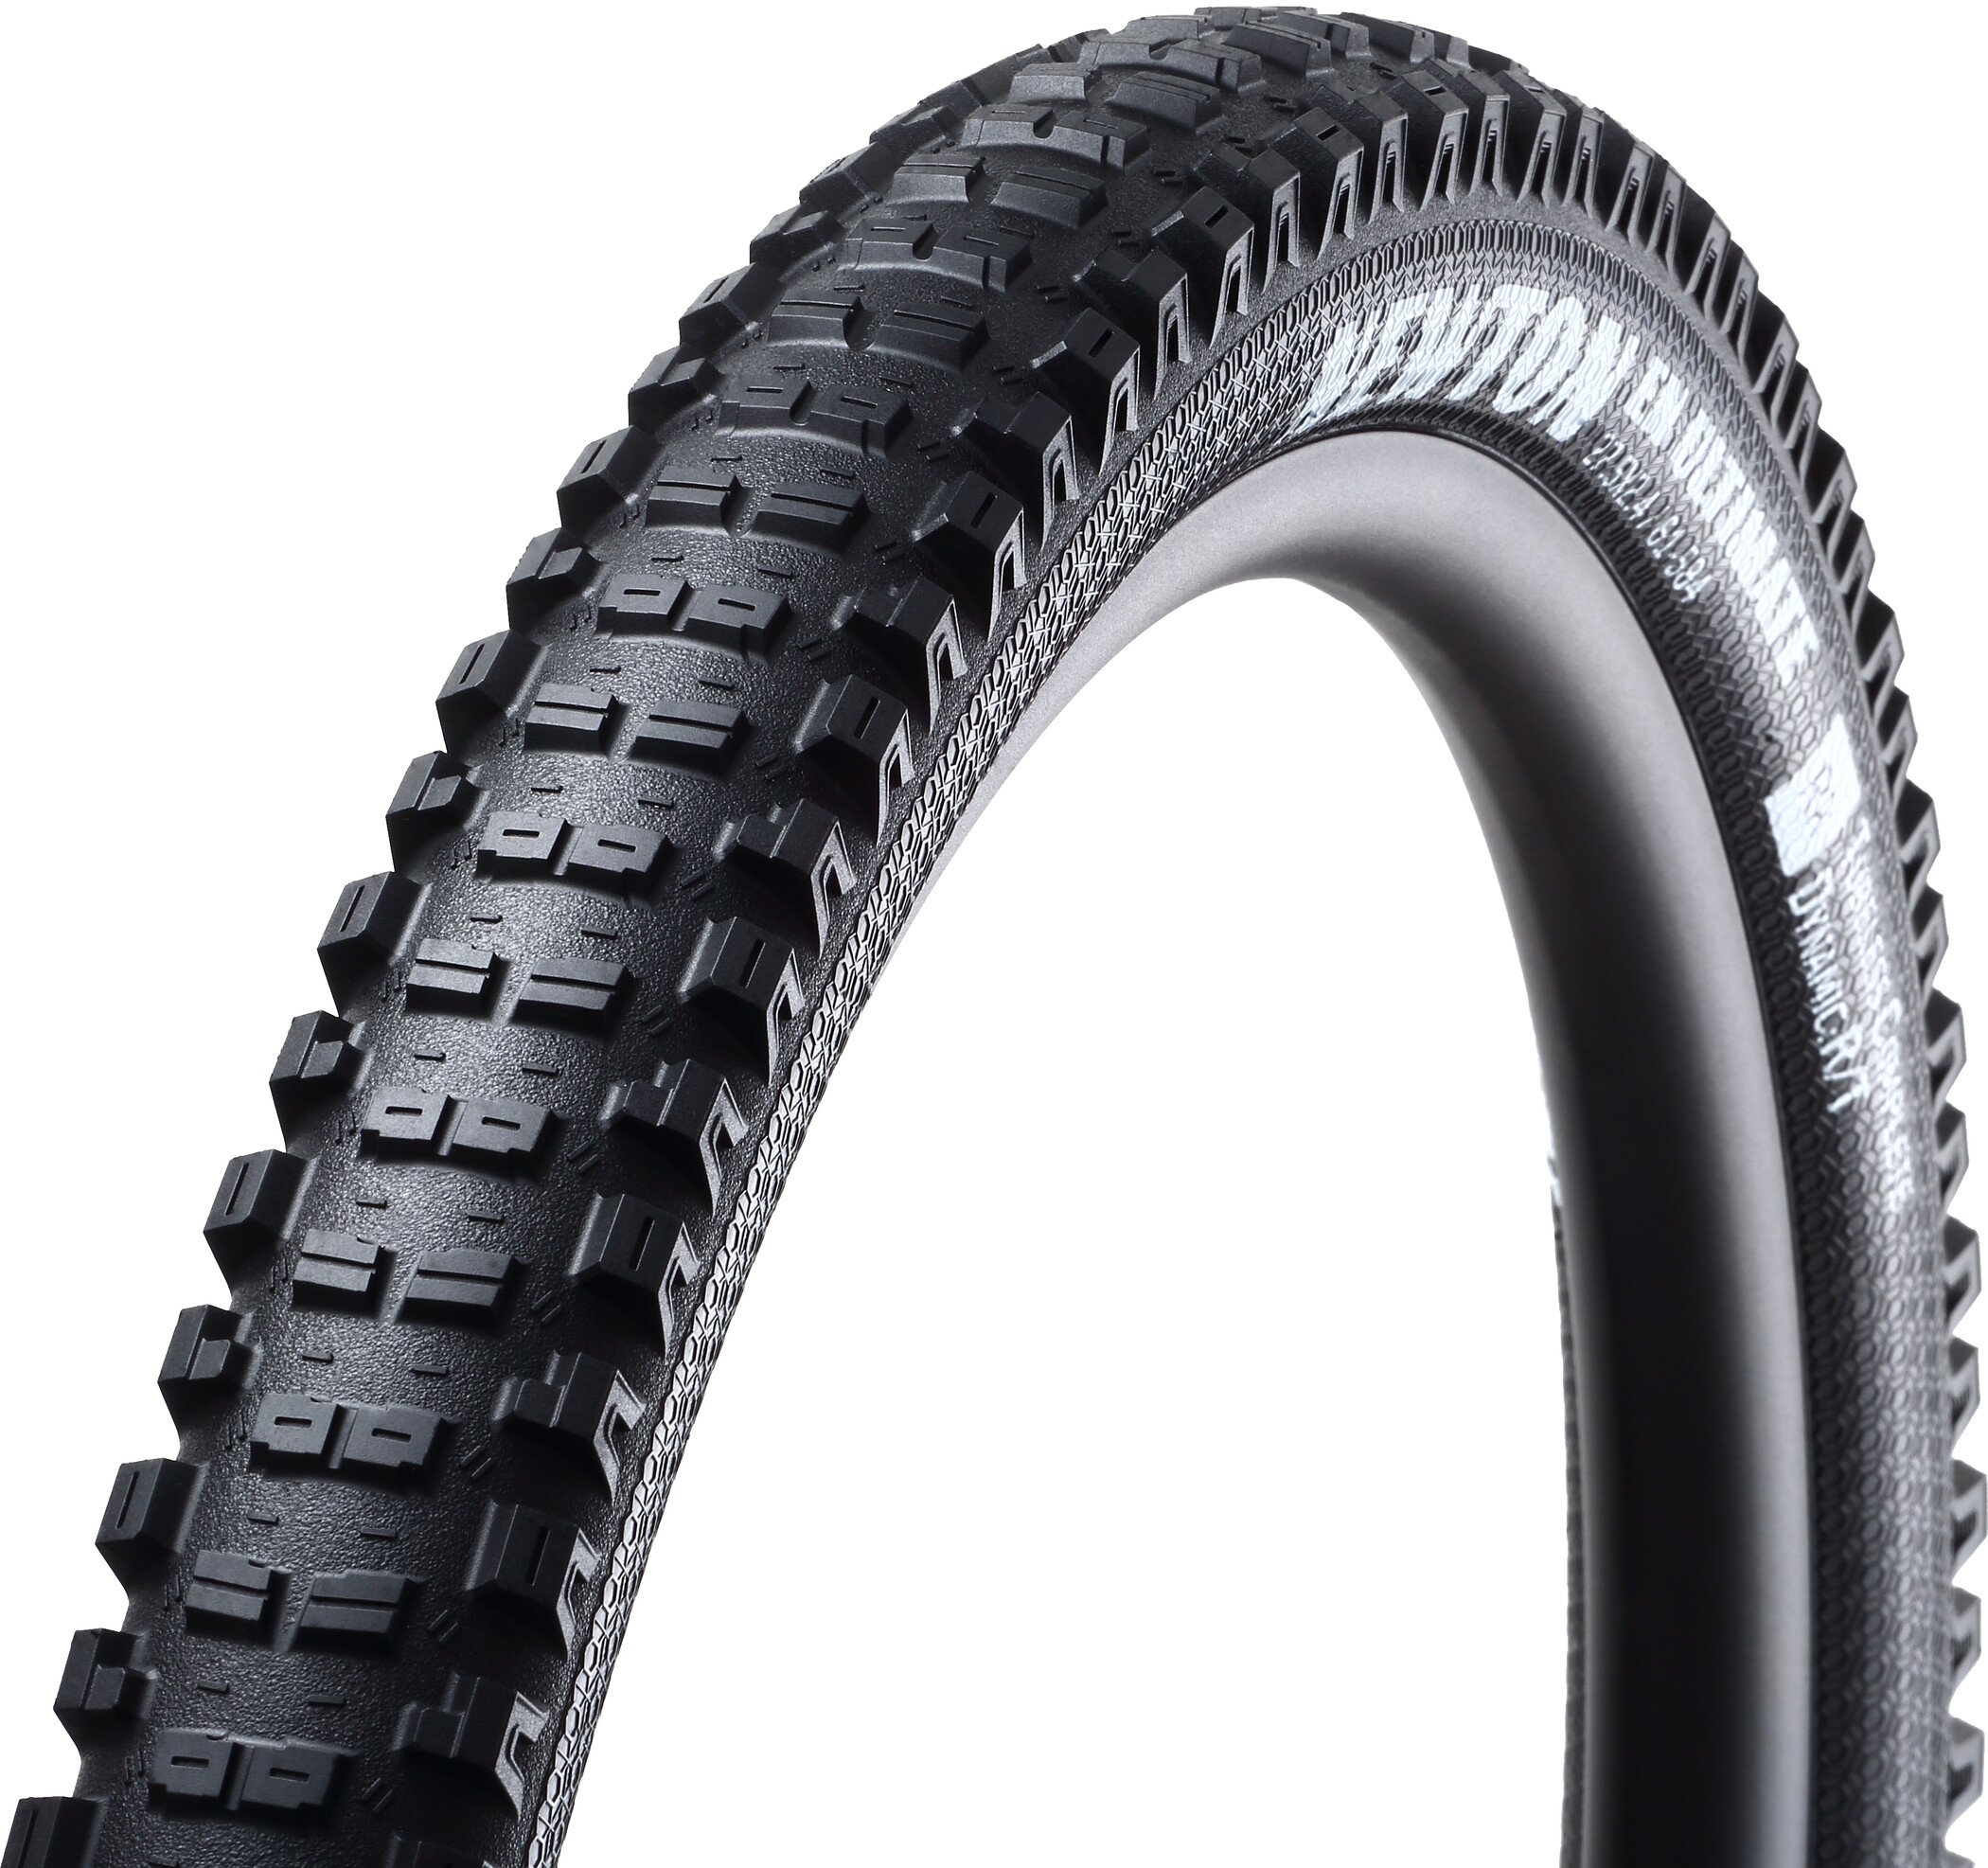 Goodyear Newton DH Ultimate Foldedæk 61-584 Tubeless Complete Dynamic RS/T e25, black (2019)   Tyres